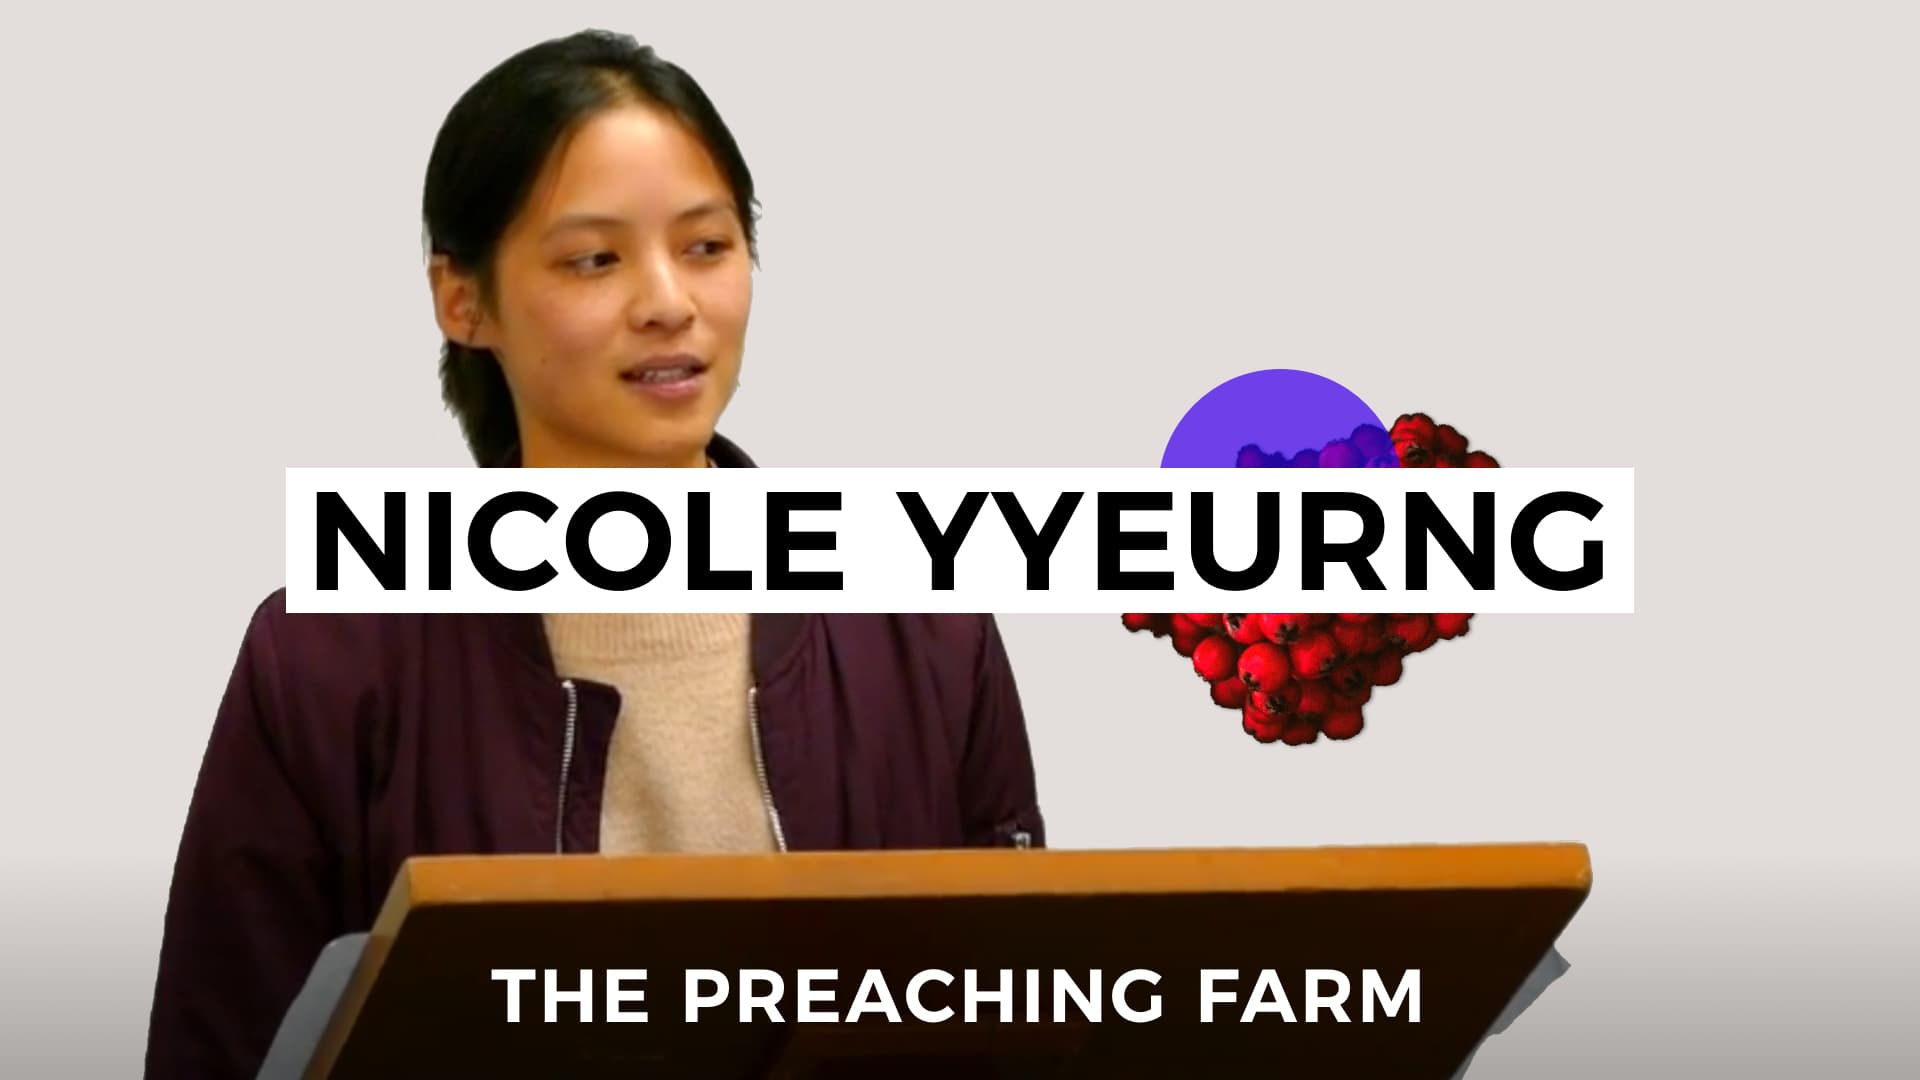 The Preaching Farm 2: Nicole Yyeurng